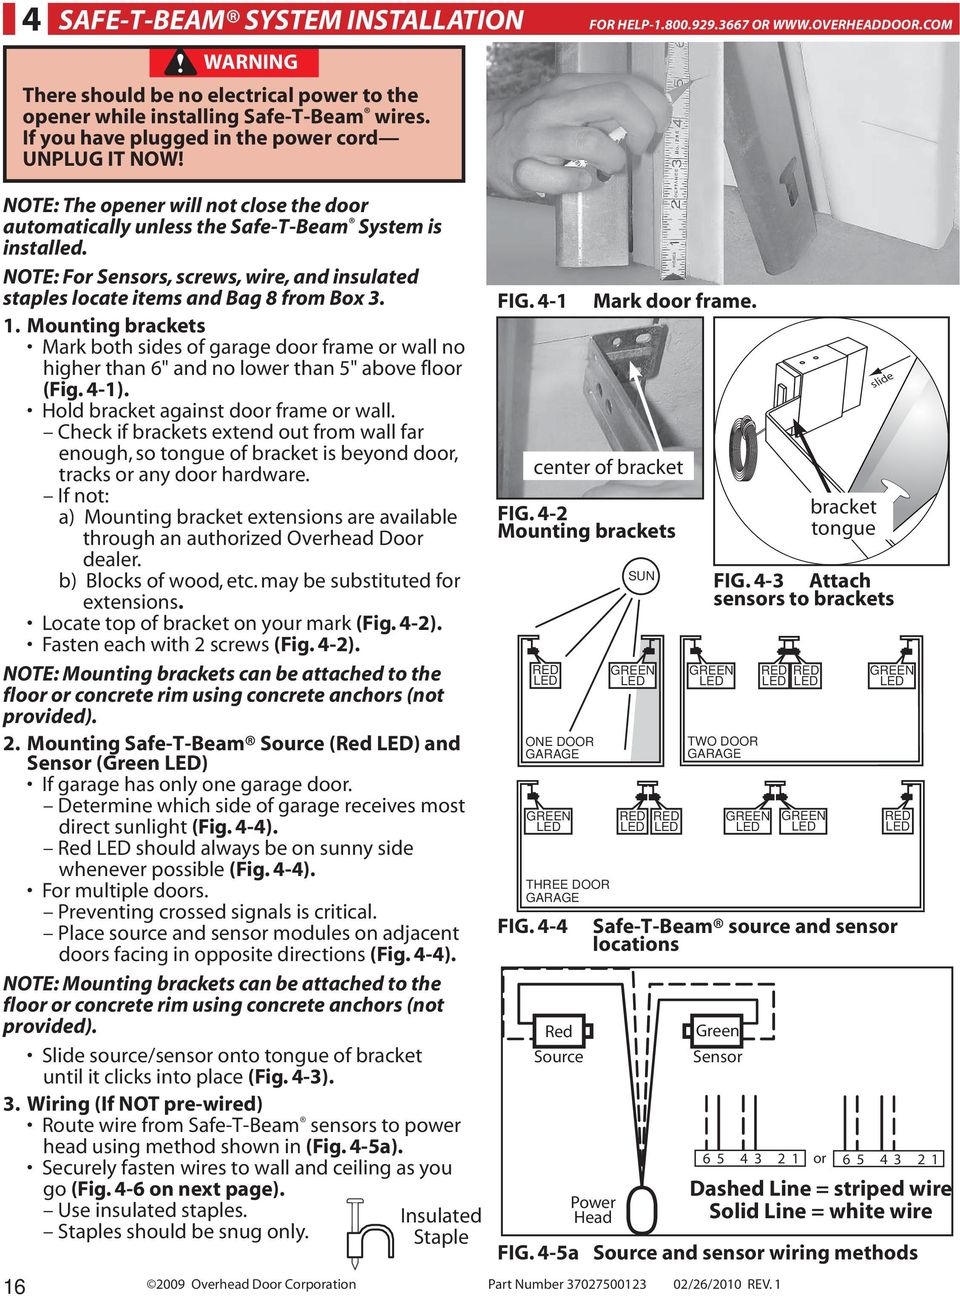 Legacy 800 Model Pdf Overhead Door Wiring Diagrams Note For Sensors Screws Wire And Insulated Staples Locate Items Bag